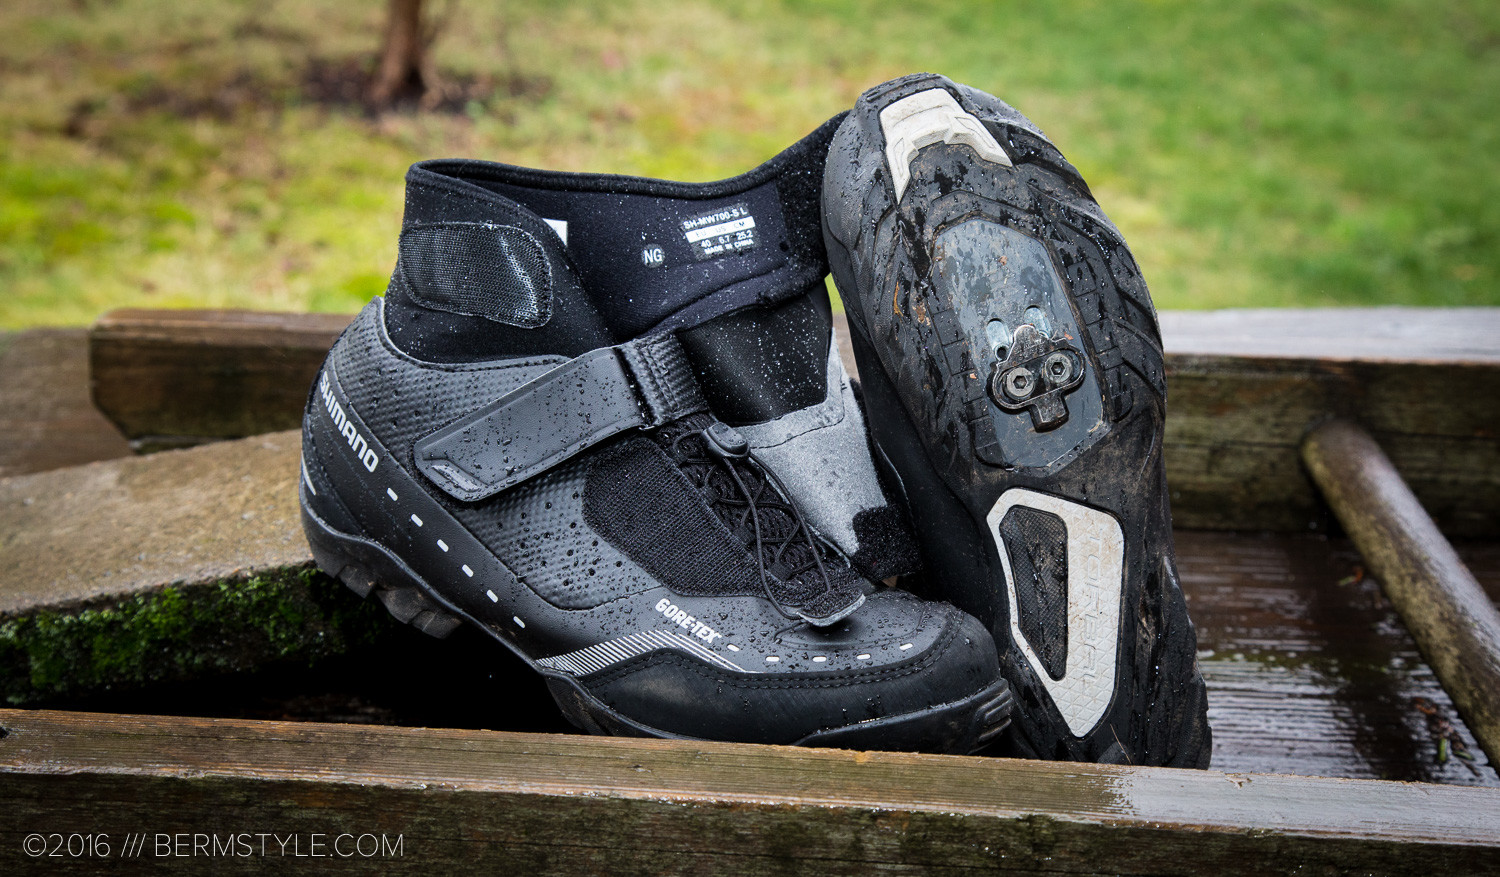 The speedlace system makes it easy to put on and remove the SW7 shoes.